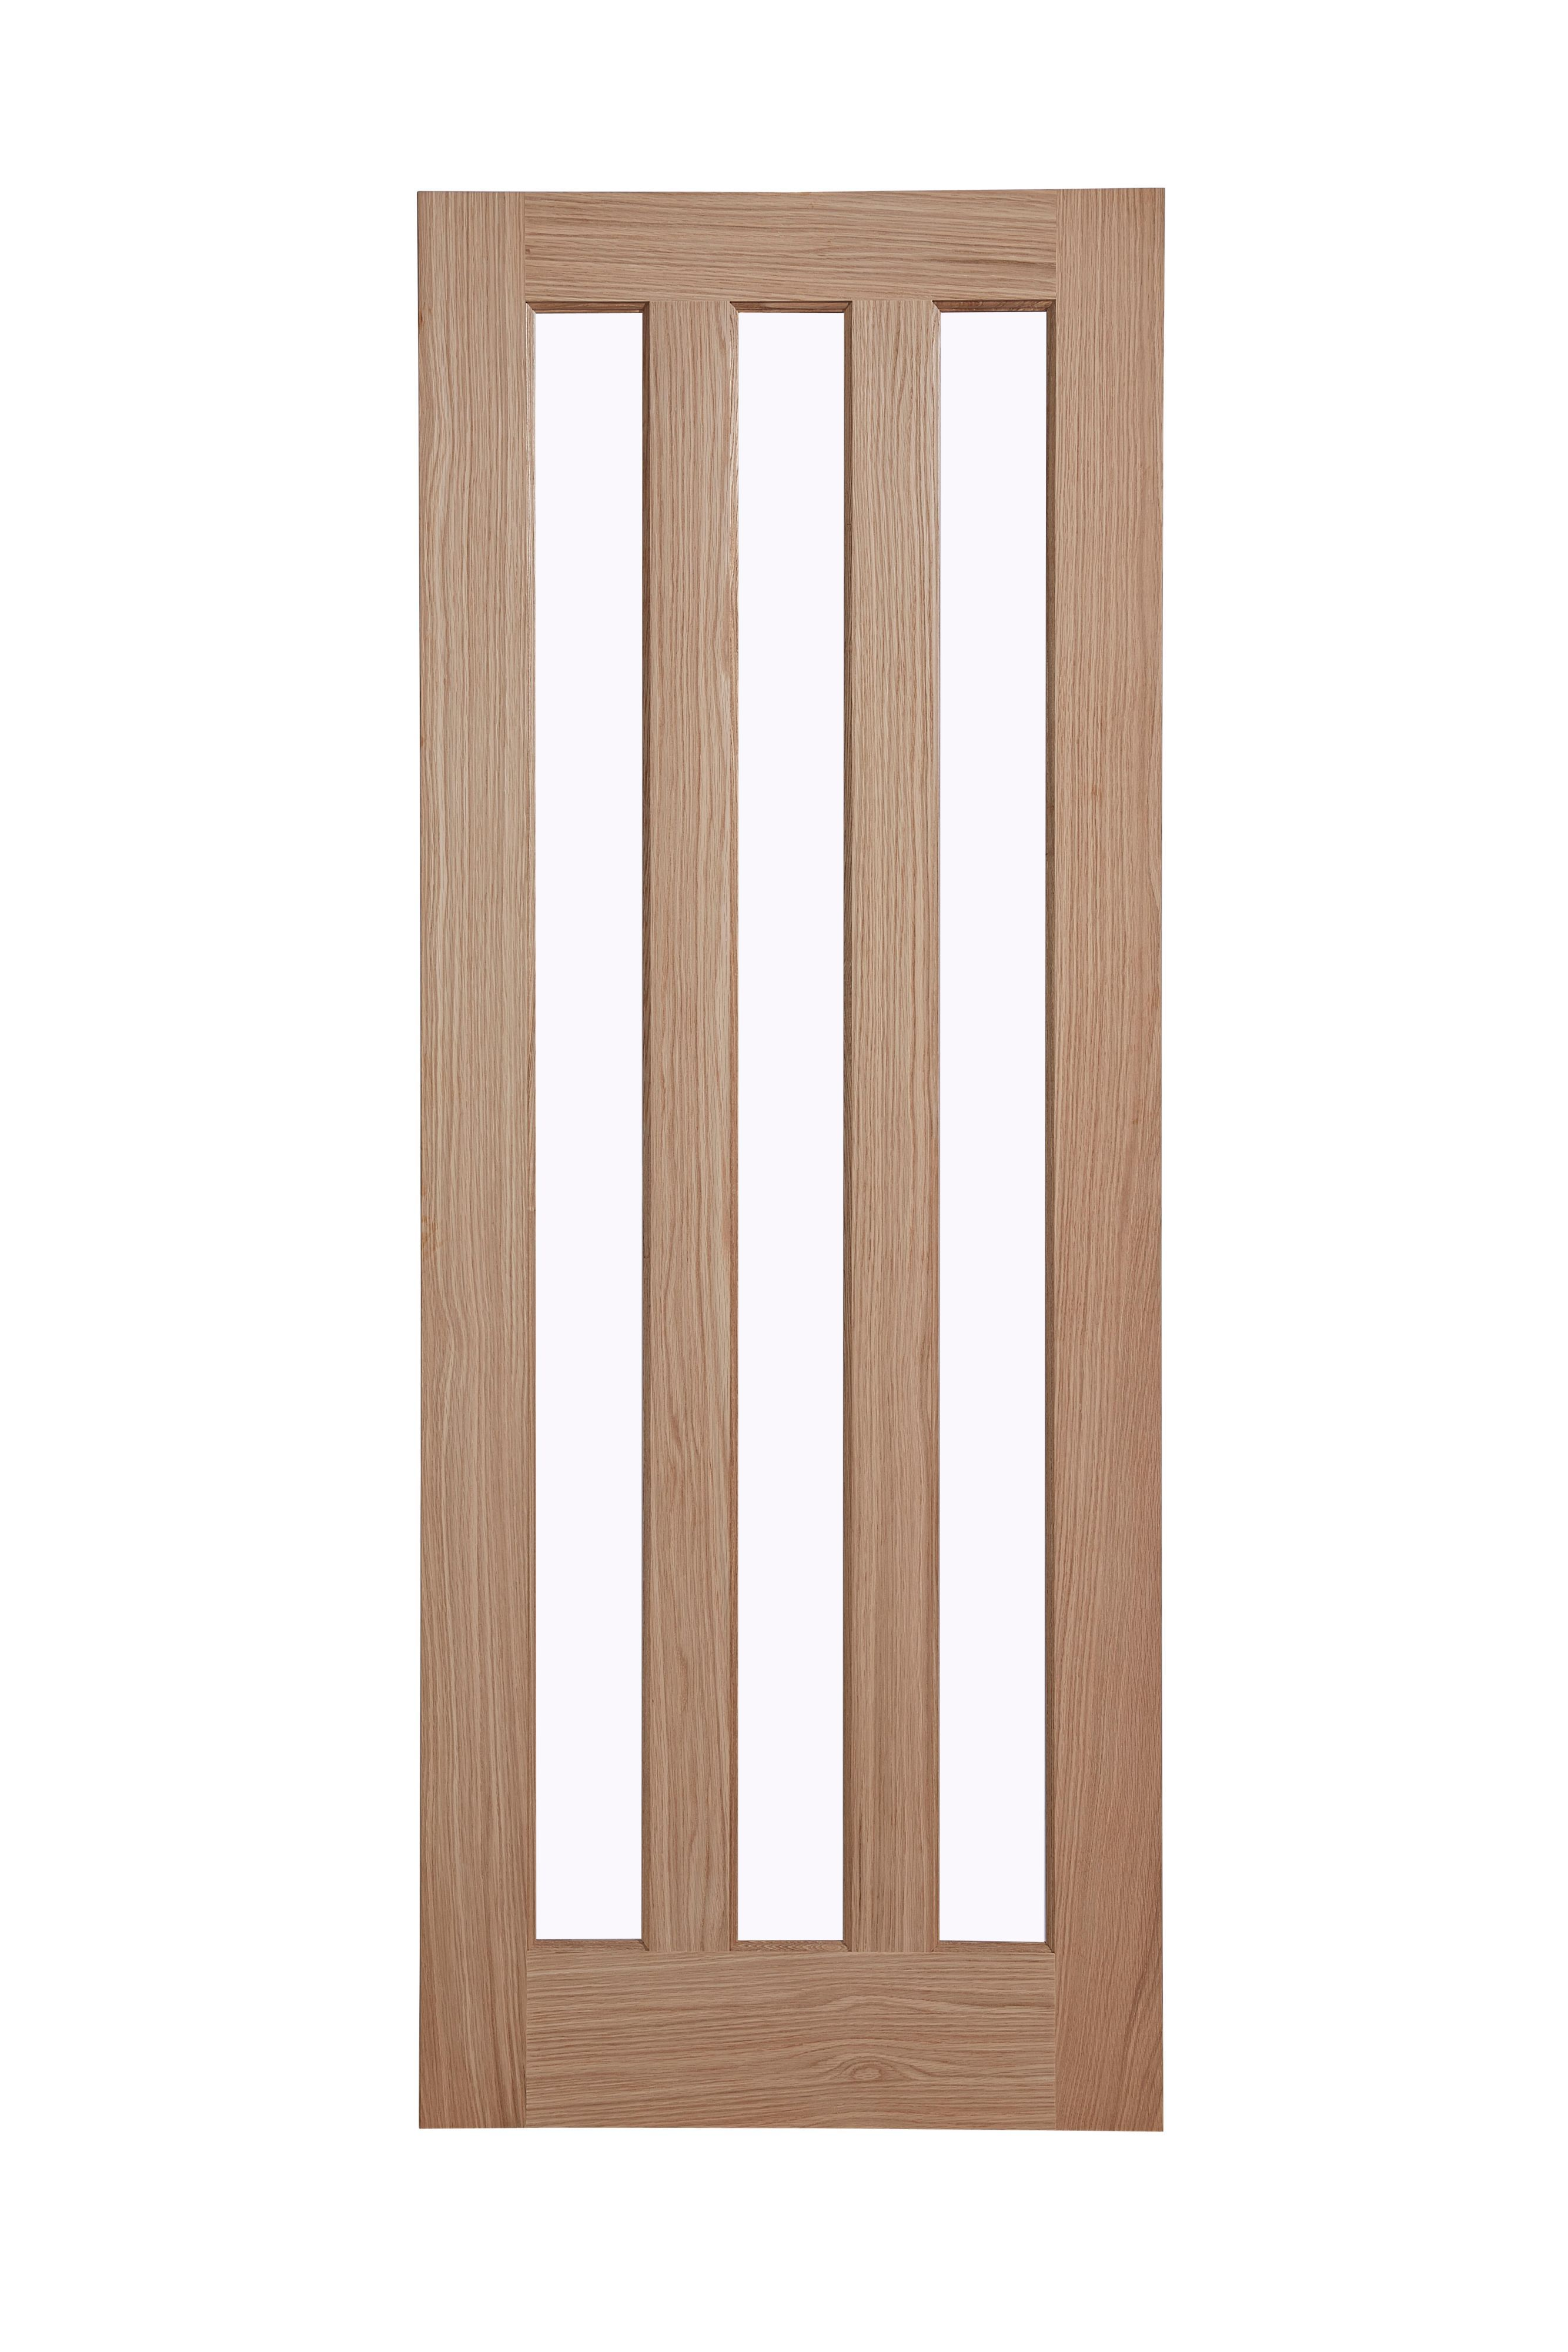 Vertical 3 Panel Oak Veneer Glazed Internal Standard Door, (h)1981mm (w)762mm